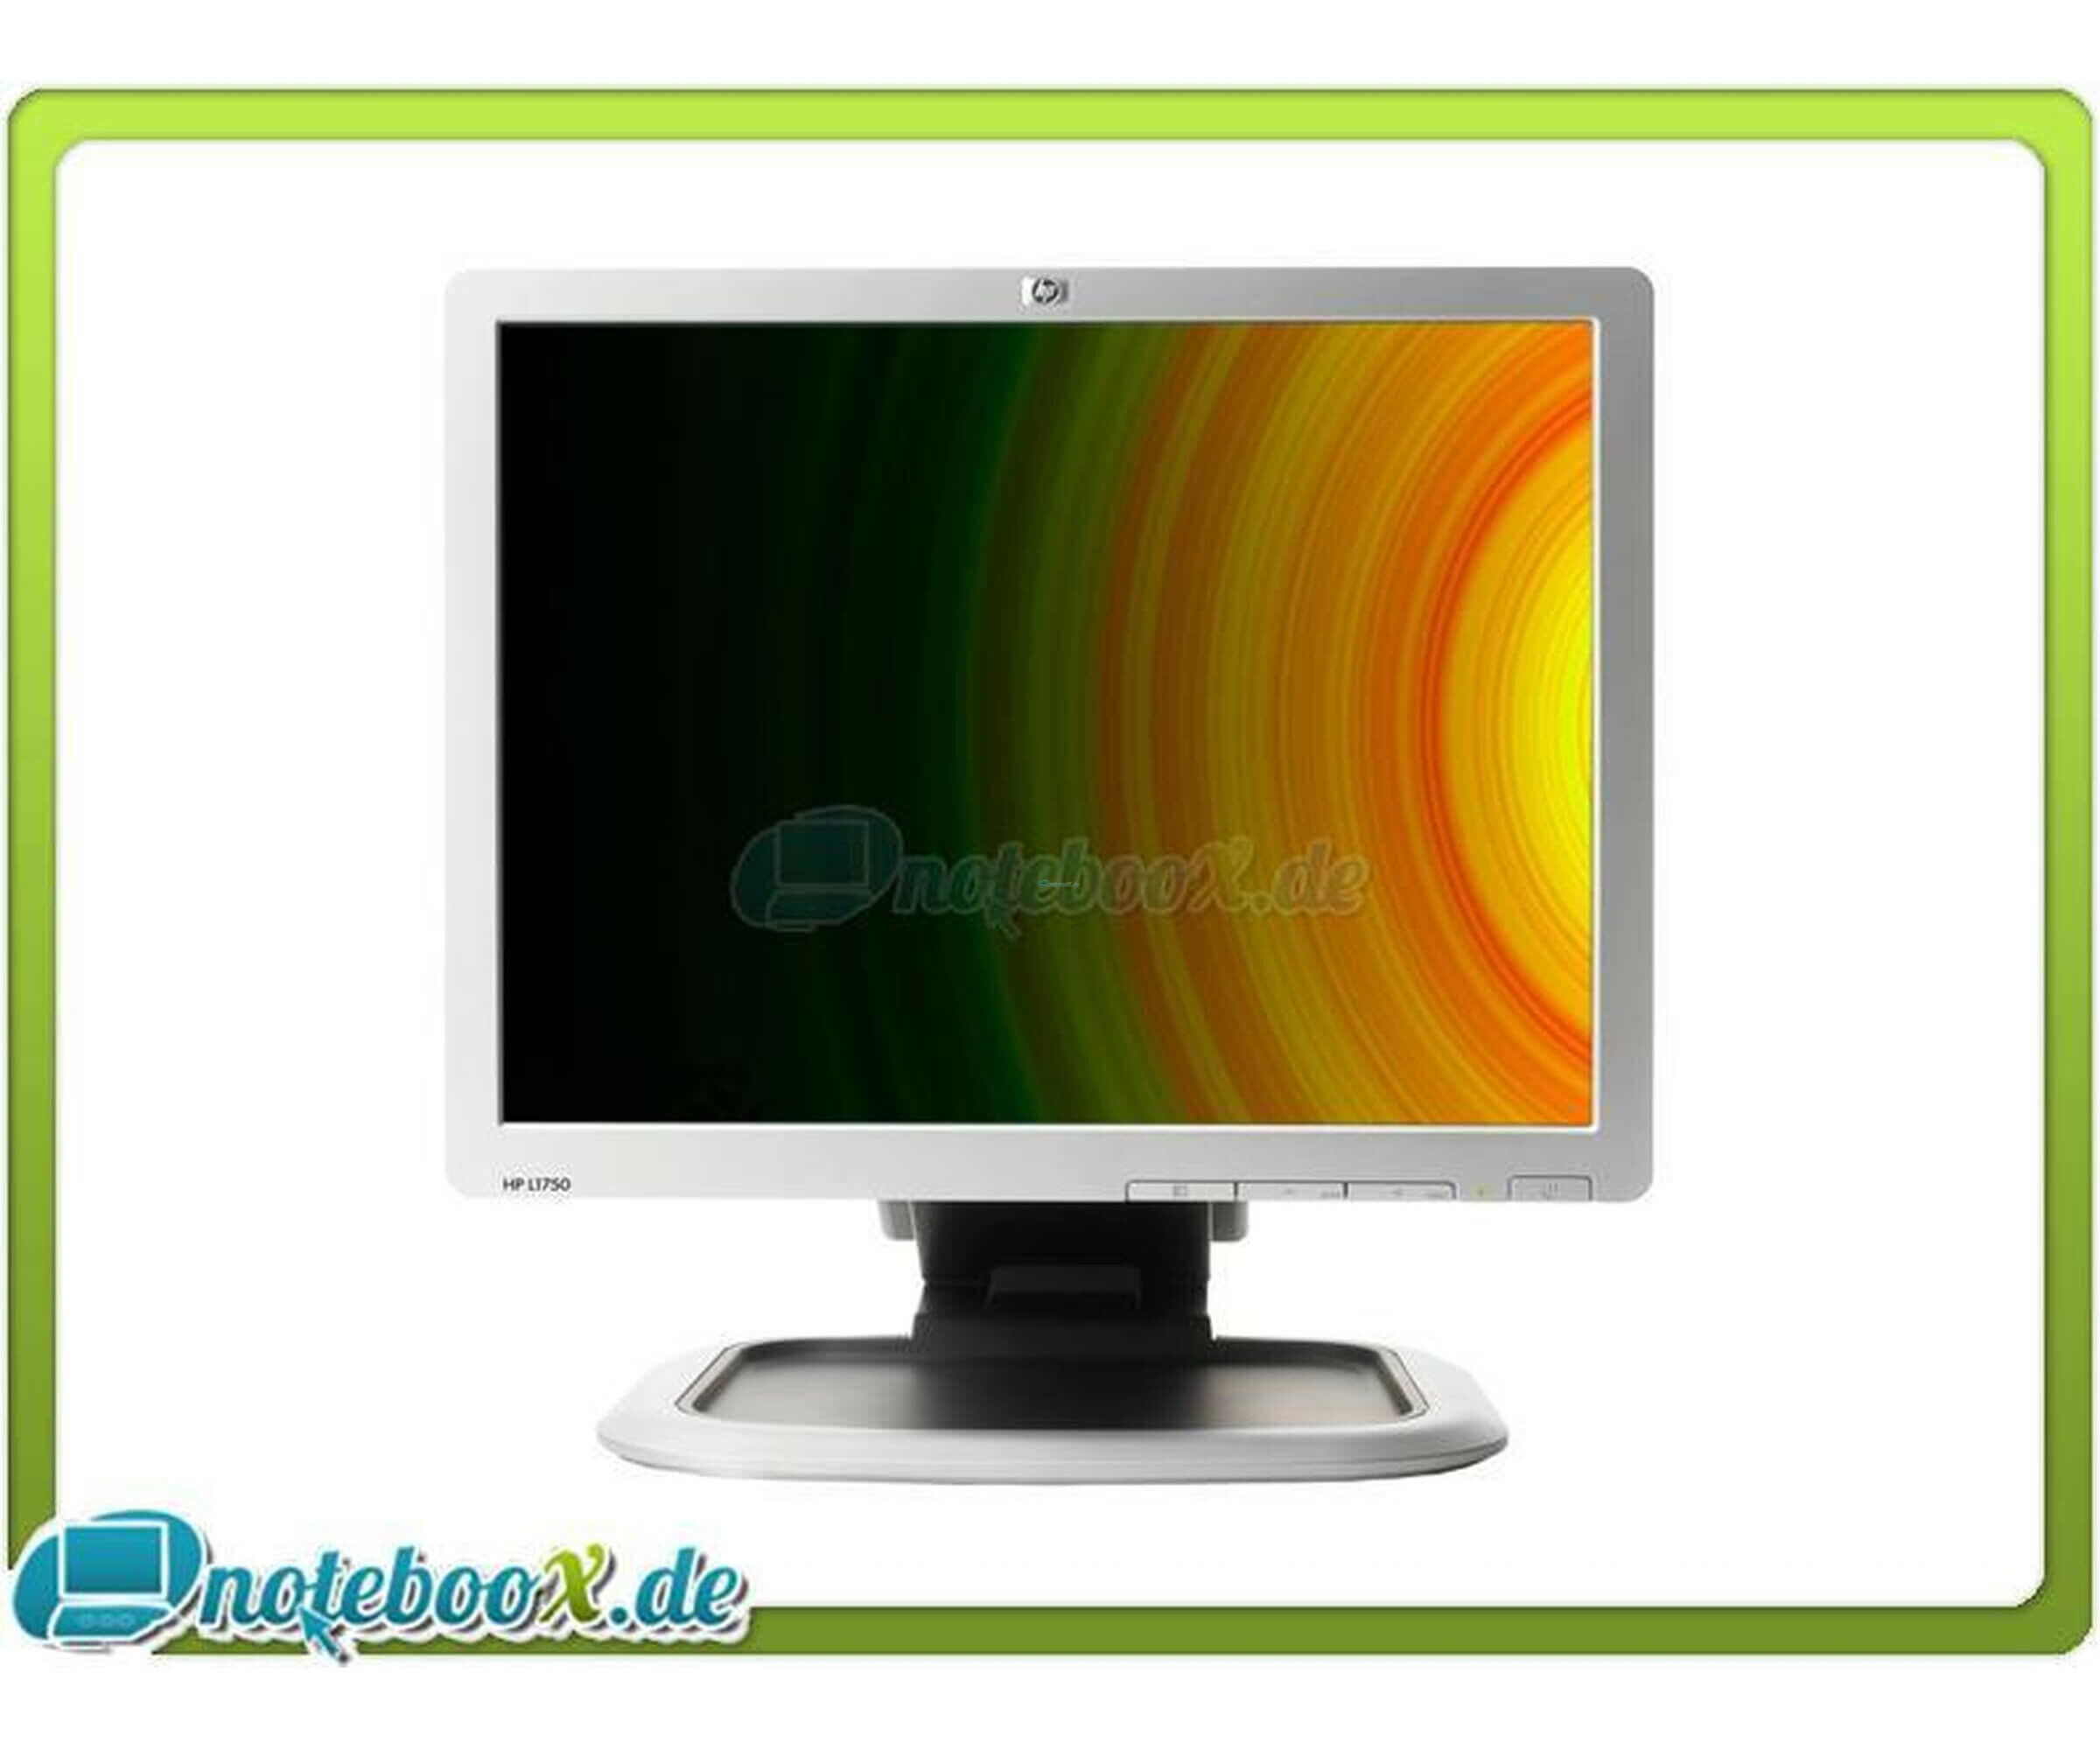 HP L1750 - 800:1 - 5 ms - LCD Monitor - 17 - 1280 x 1024-300 cd/m2 - DVI-D, VGA - Used